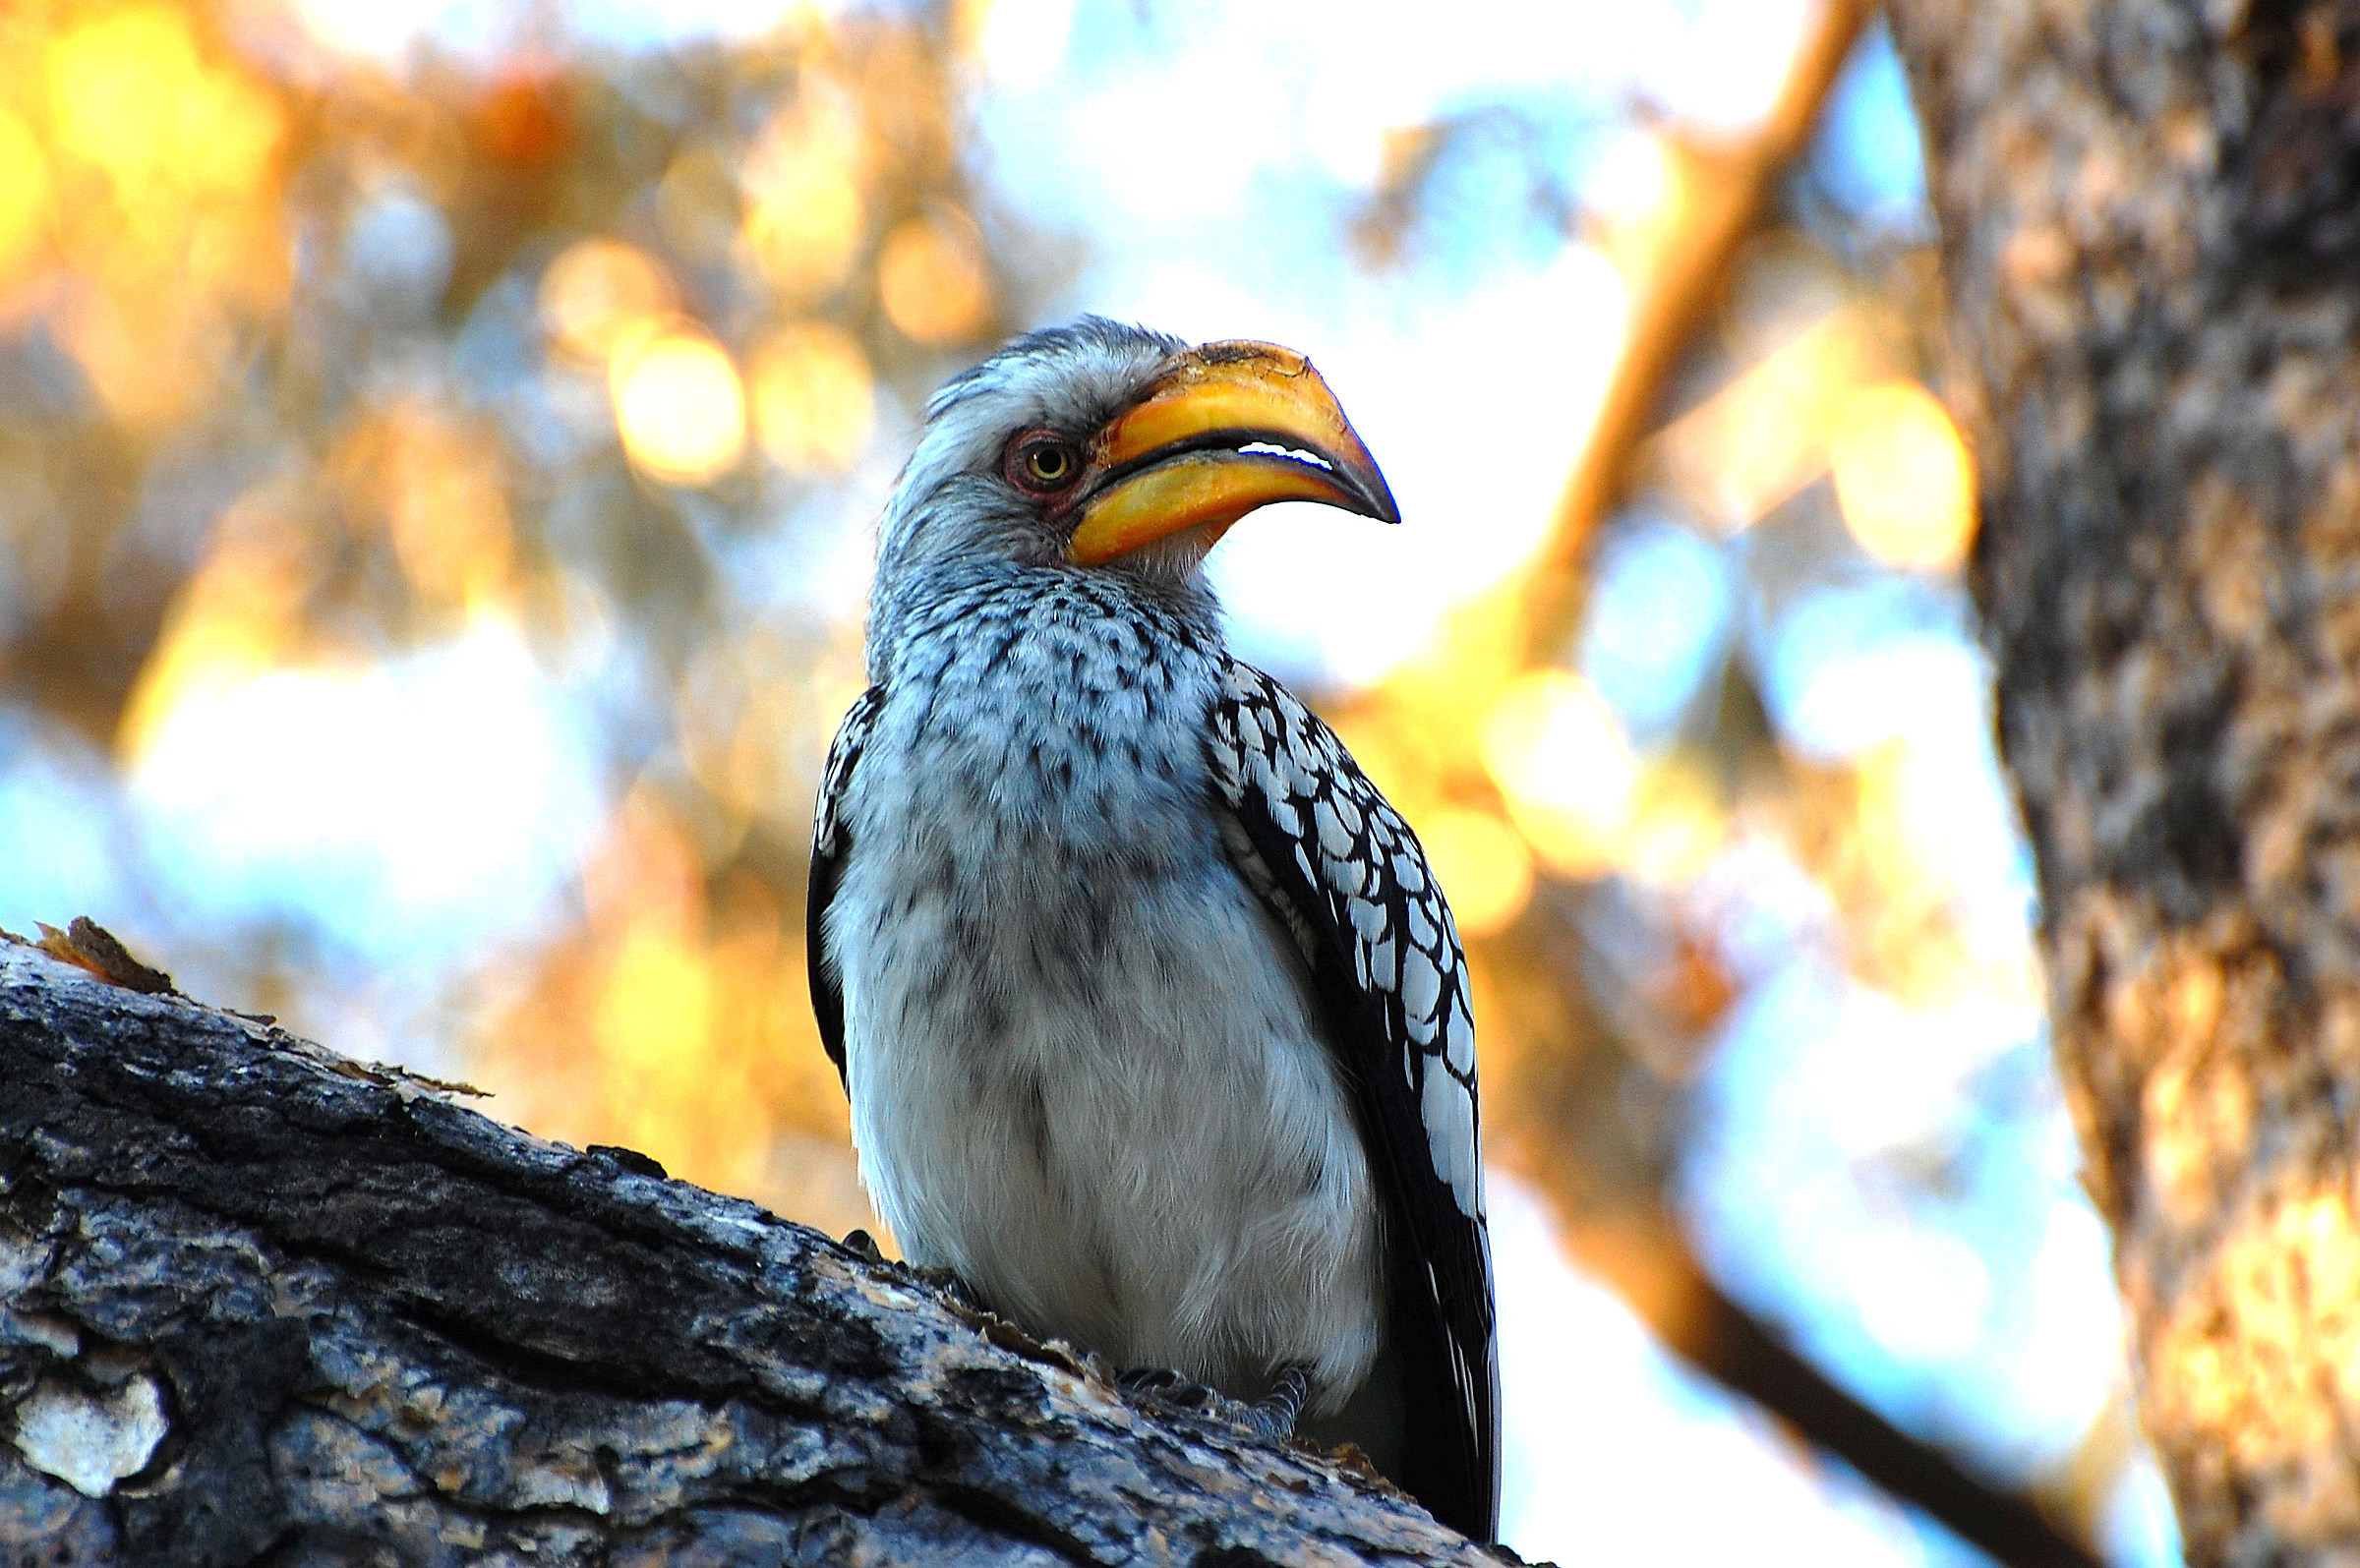 Botswana: Long-billed Hornbill...